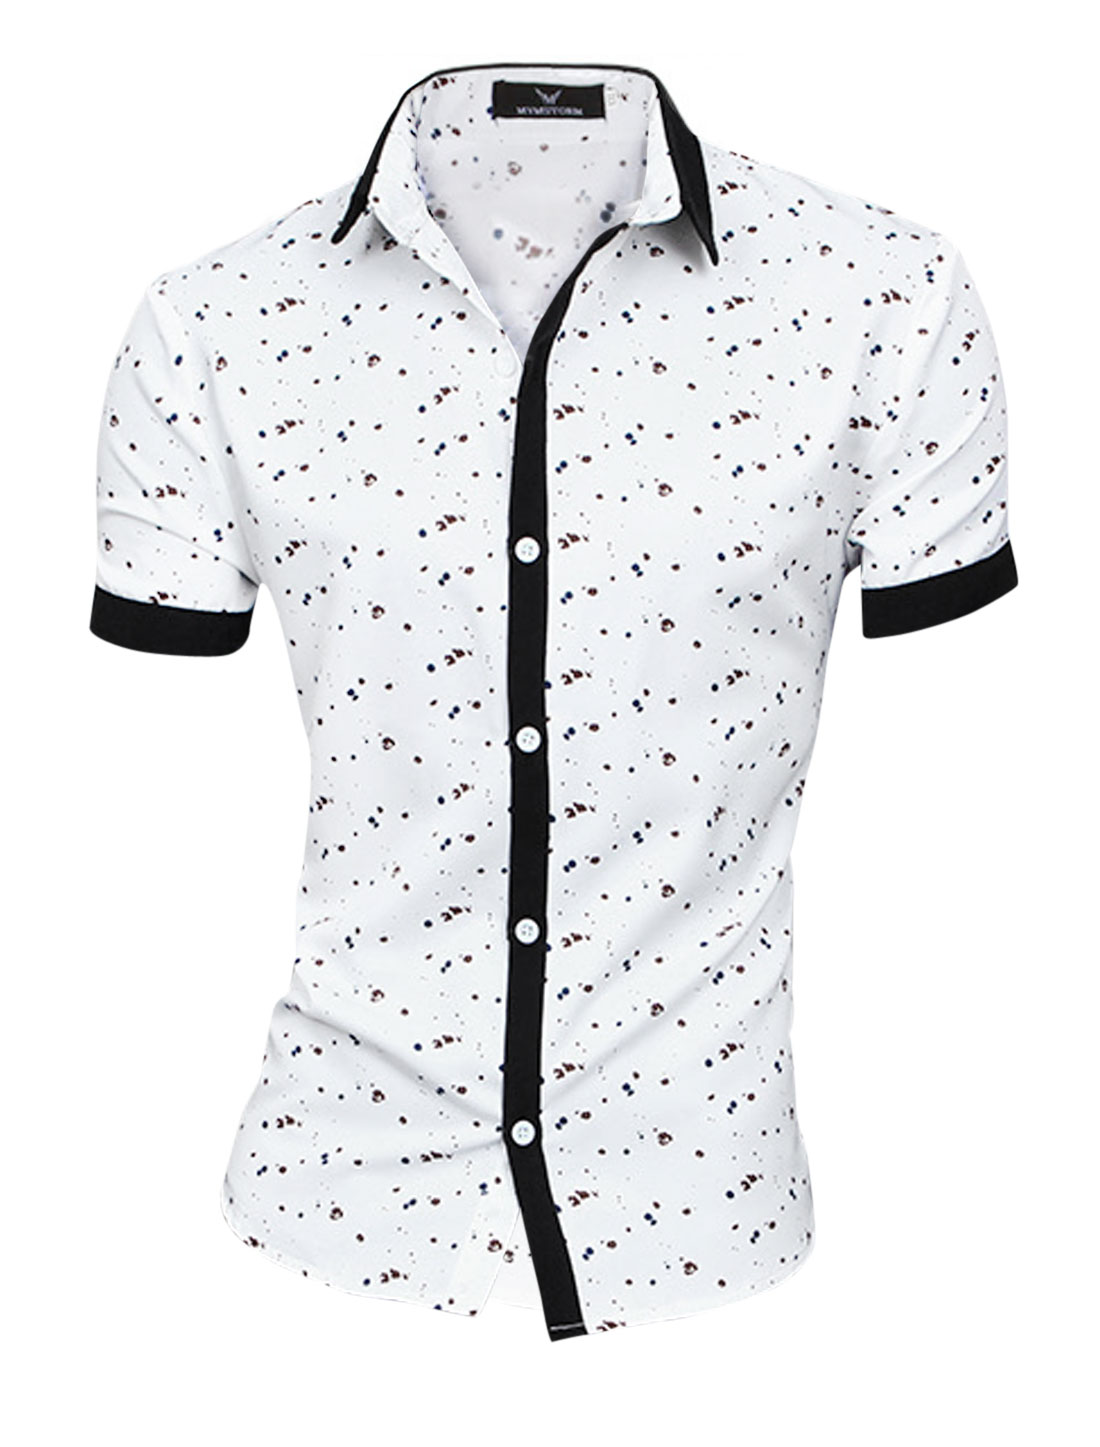 Men Point Collar Dots Patching Fashion NEW Top Shirt White M